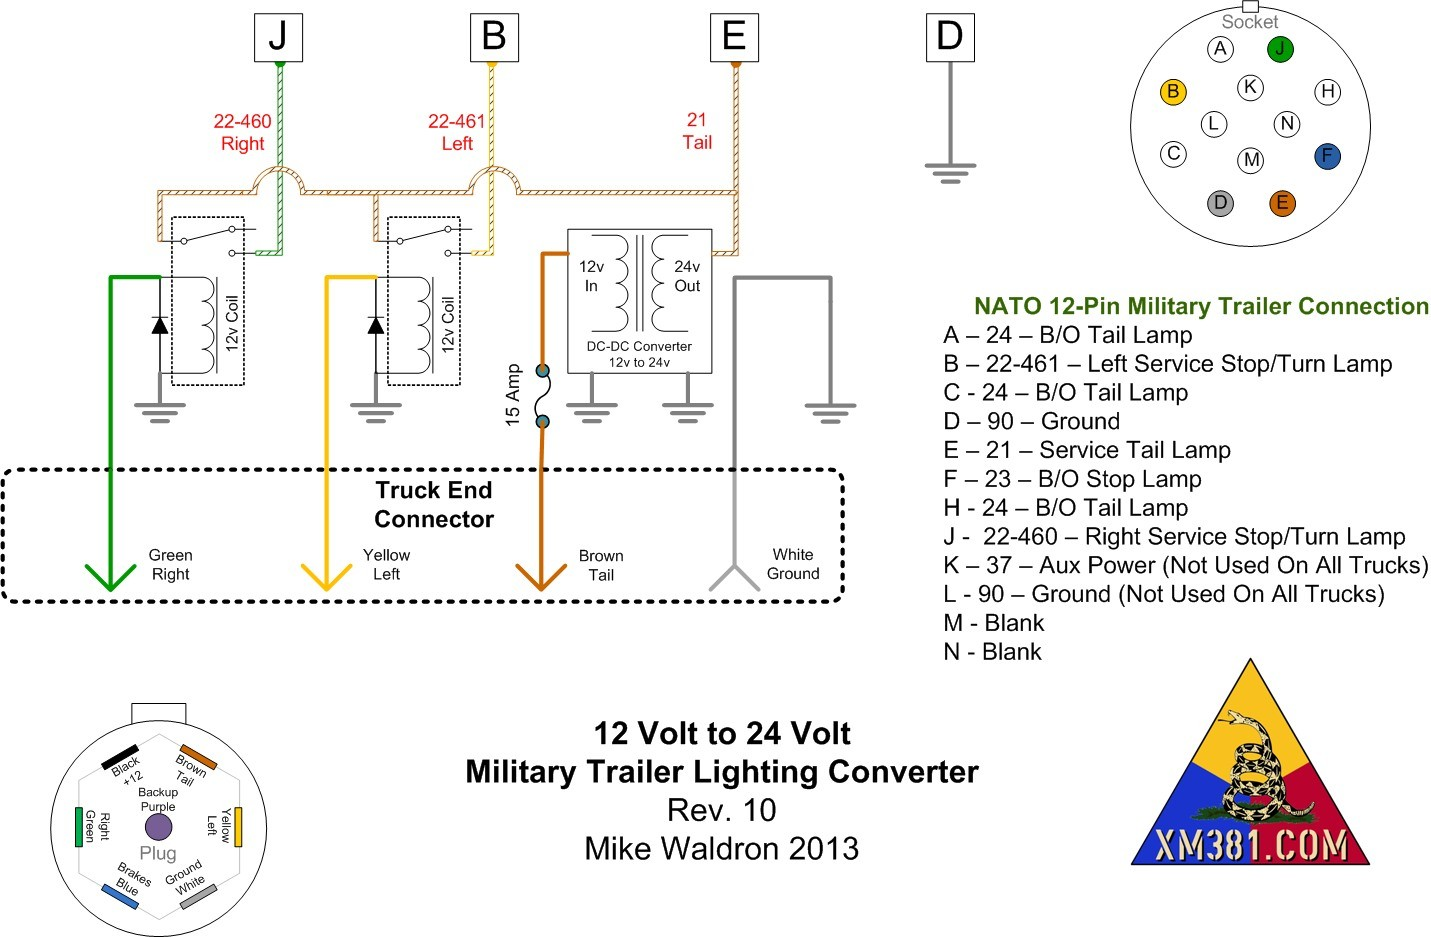 Enjoyable Military Trailer Wiring Diagram Wiring Diagram Wiring 101 Akebretraxxcnl